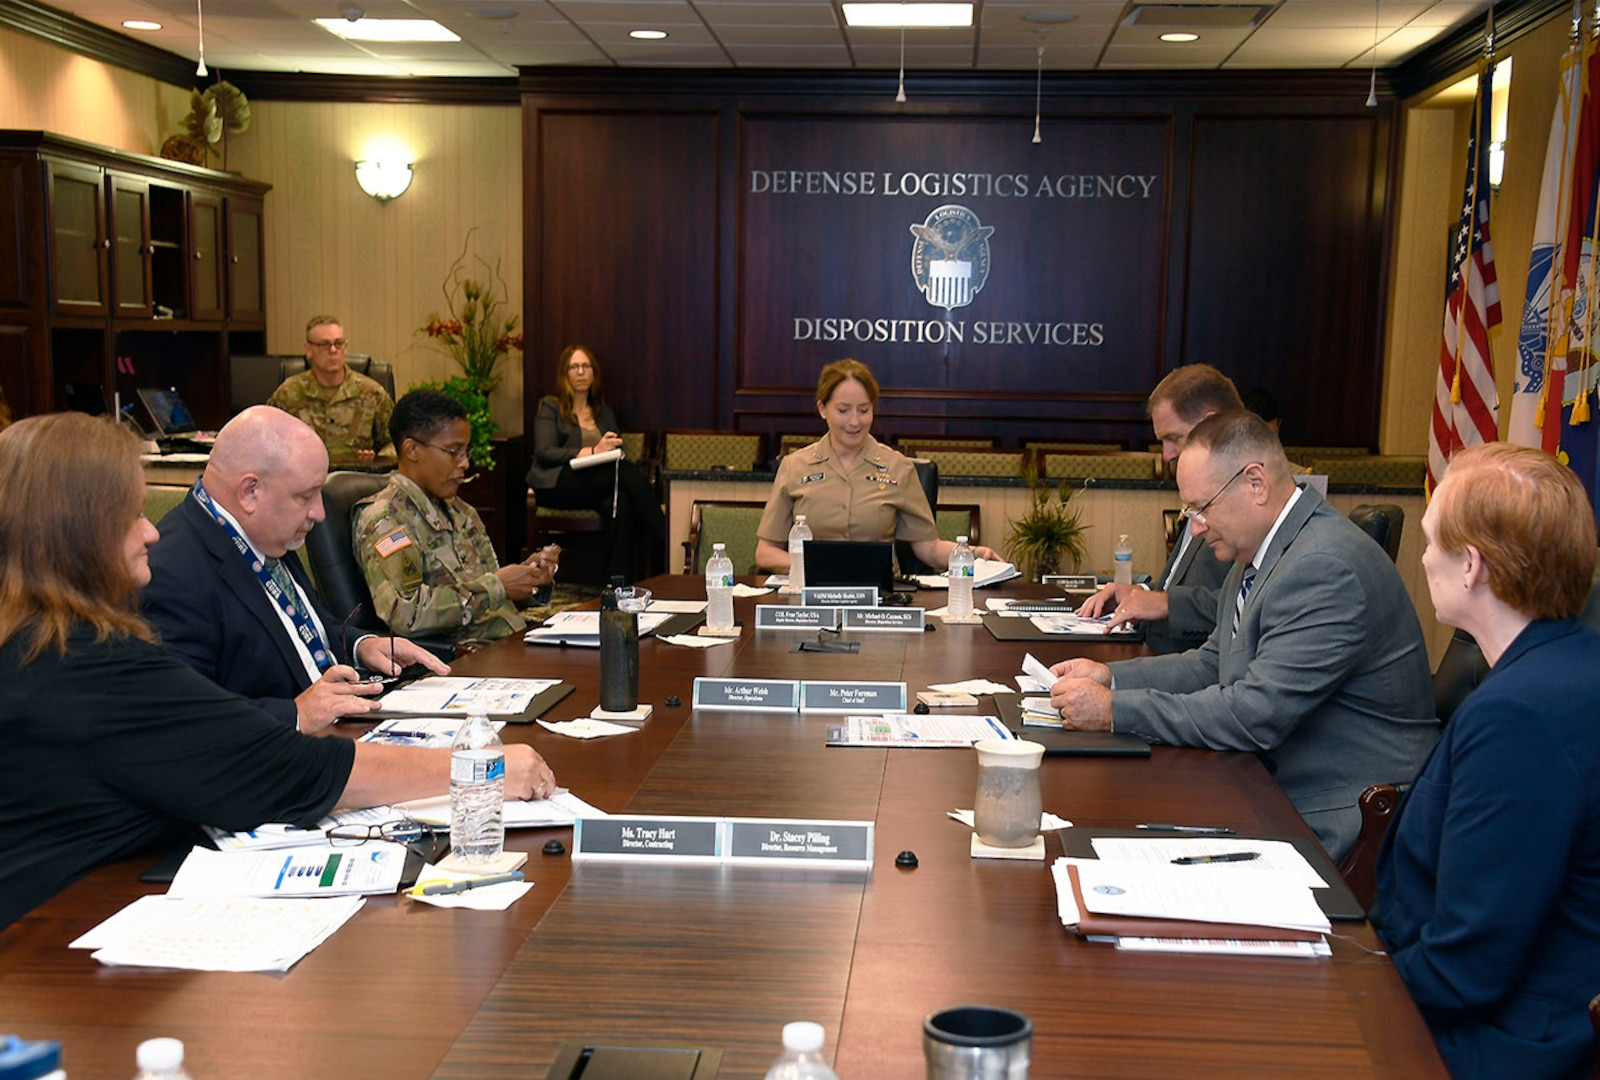 Group of DLA employees sit at conference table.